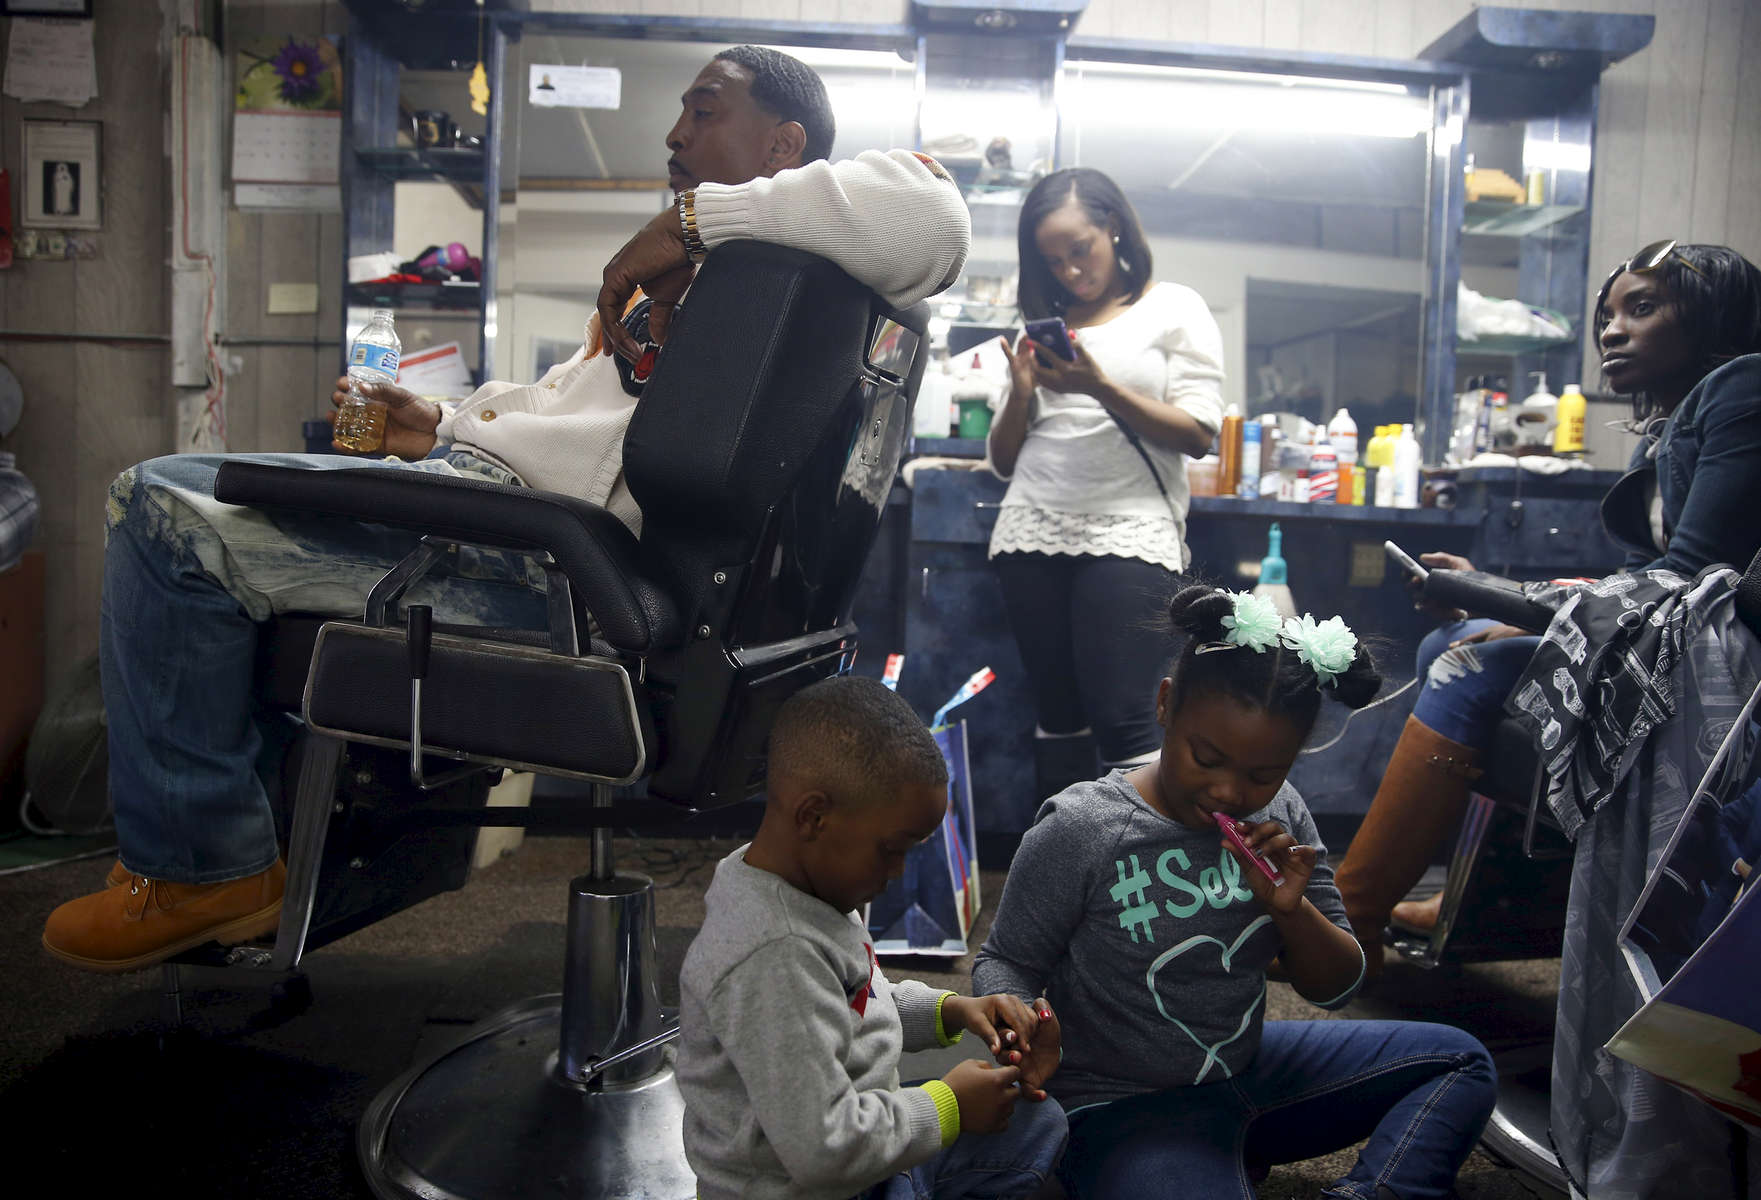 Selma, Alabama -- 3/07/2015-- Children play as people watch President Obama deliver a speech on a television set inside at Ray\'s Bar-B-Que Sandwich Shop which also doubles as a barber shop in Selma, Alabama March 7, 2015. Jessica Rinaldi/Globe StaffTopic: Reporter: